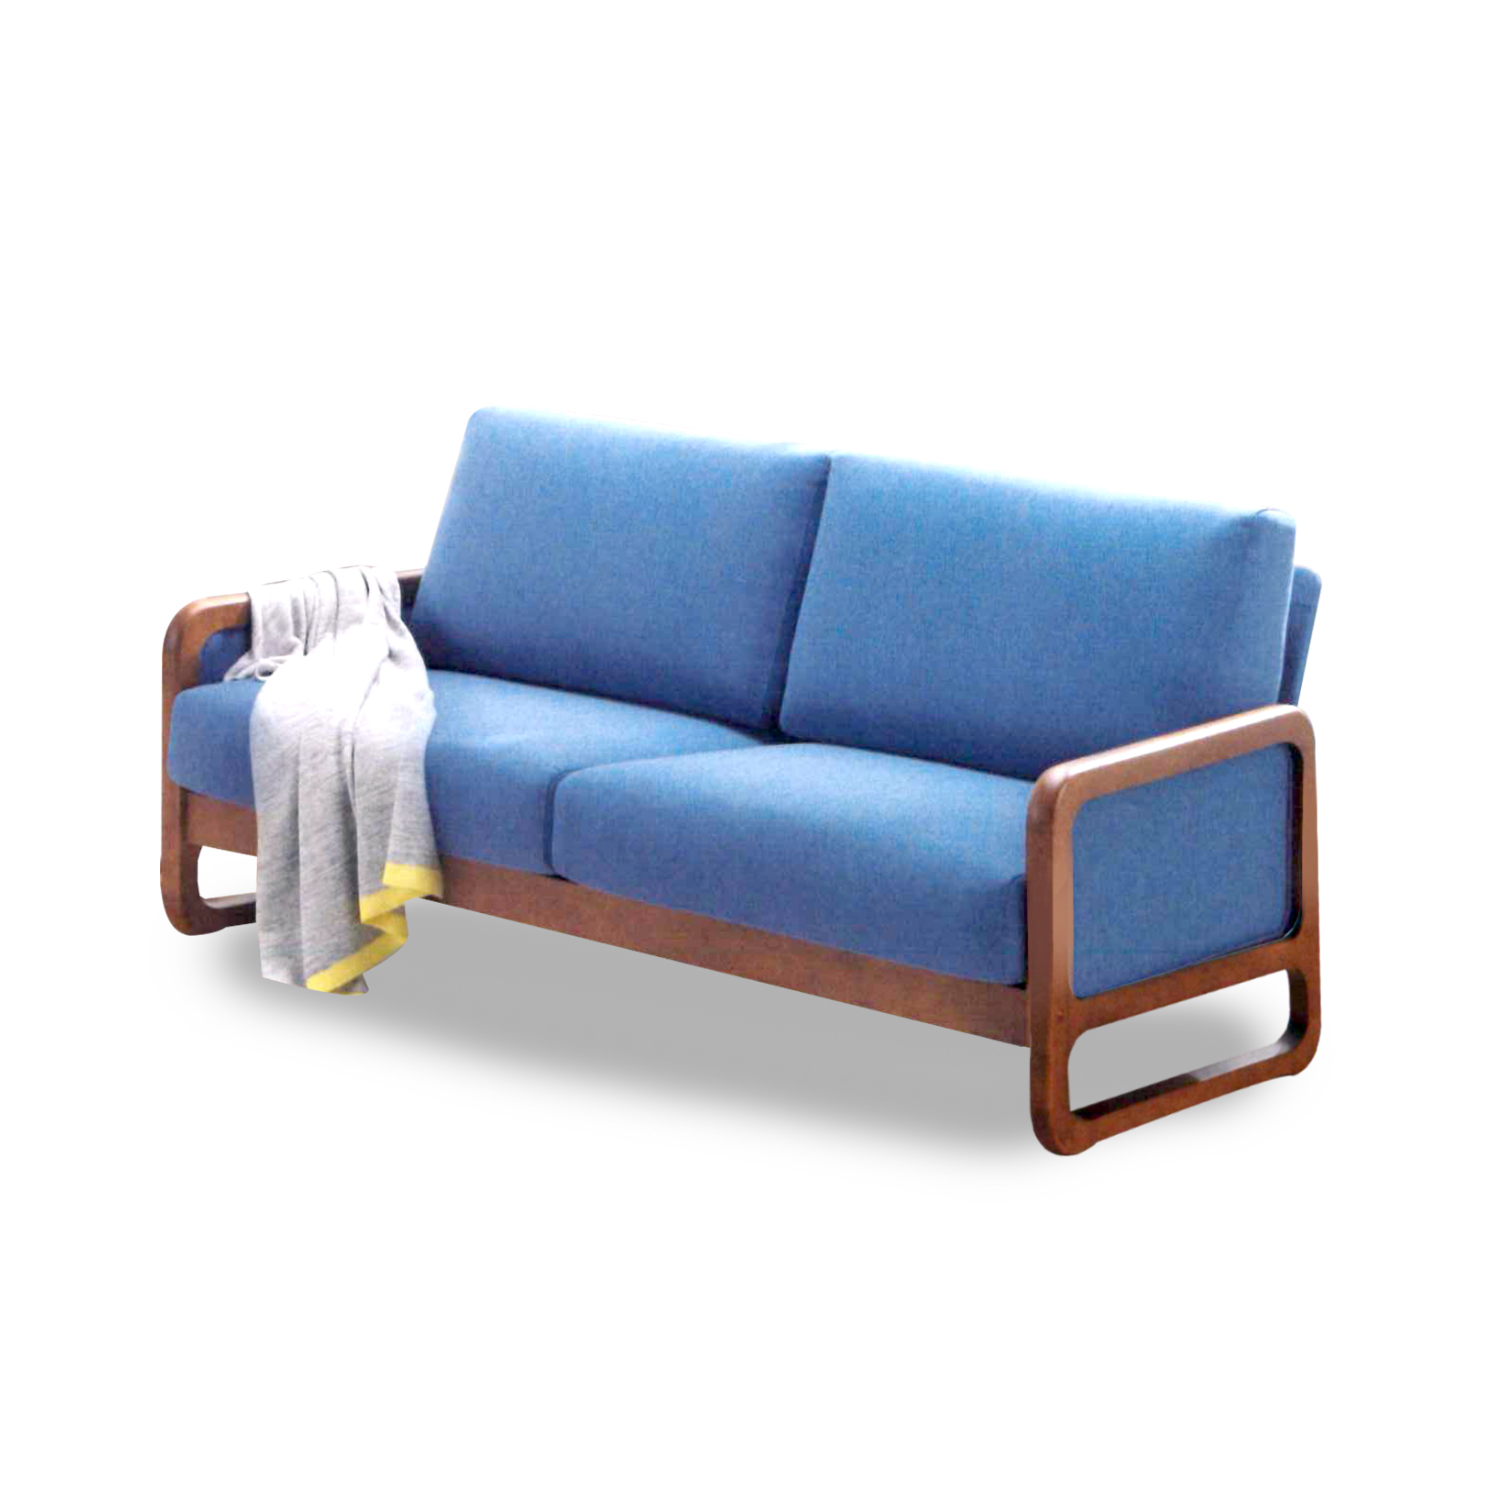 sofa 6633 dark blue.jpg